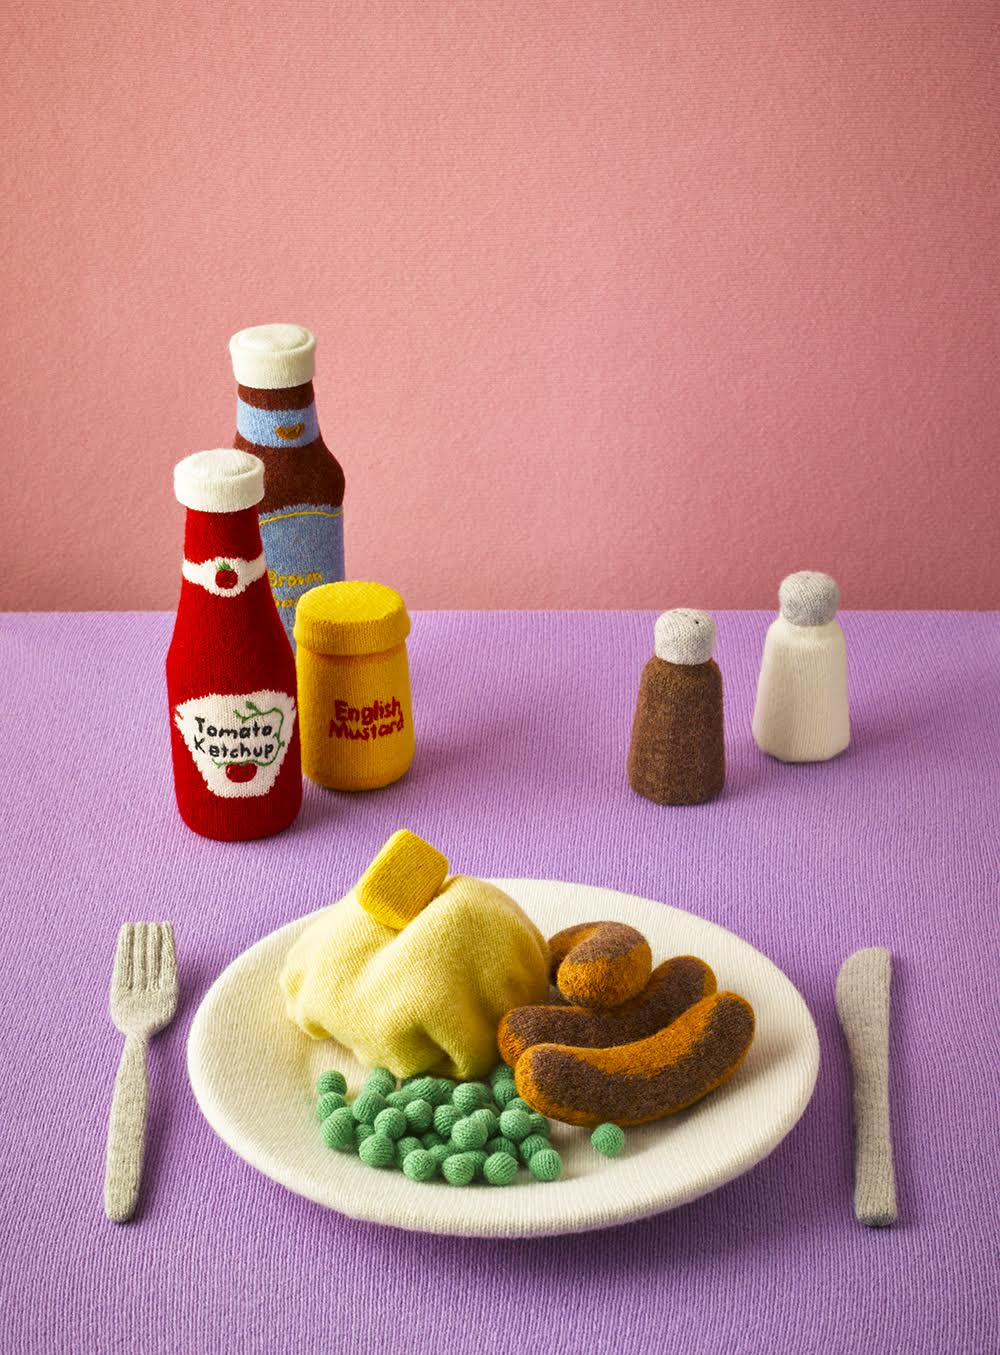 Knitted Food Knit Dinner Plate with Sausage Peas and Potatoes Ketchup Mustard Salt and Pepper